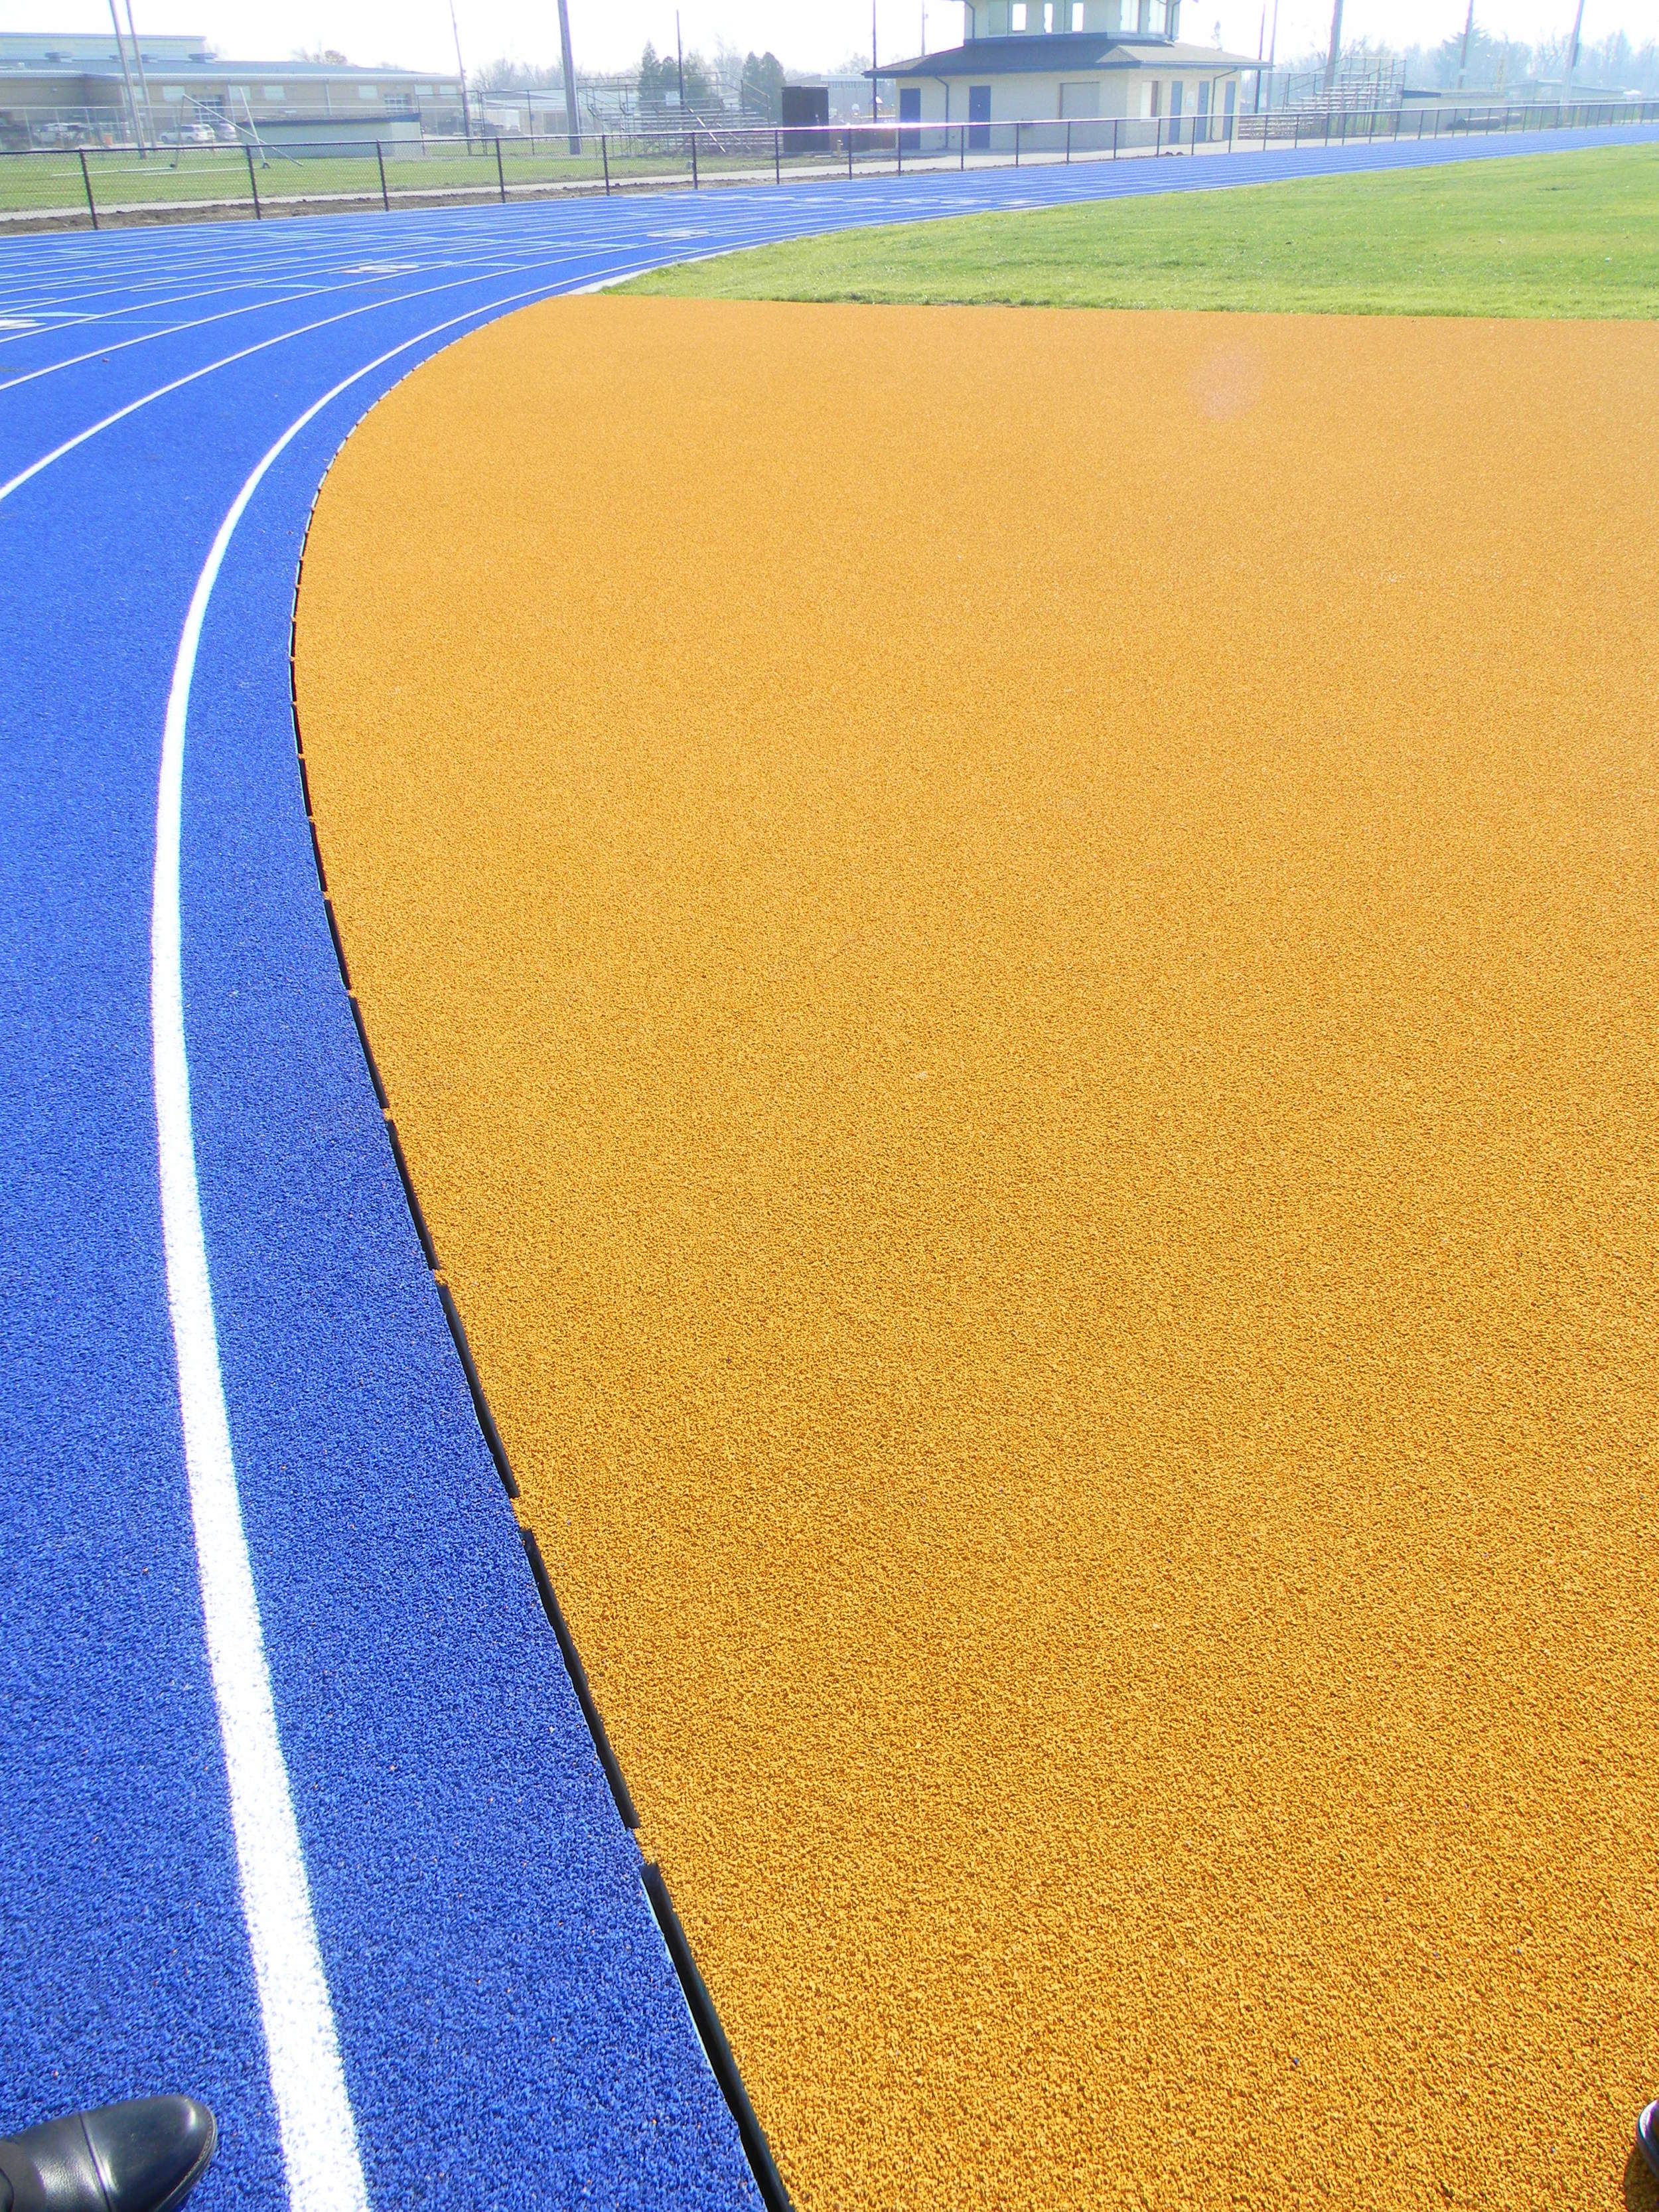 www.rcmarchitects.com - findlay city schools - coopertires track field complex (3)